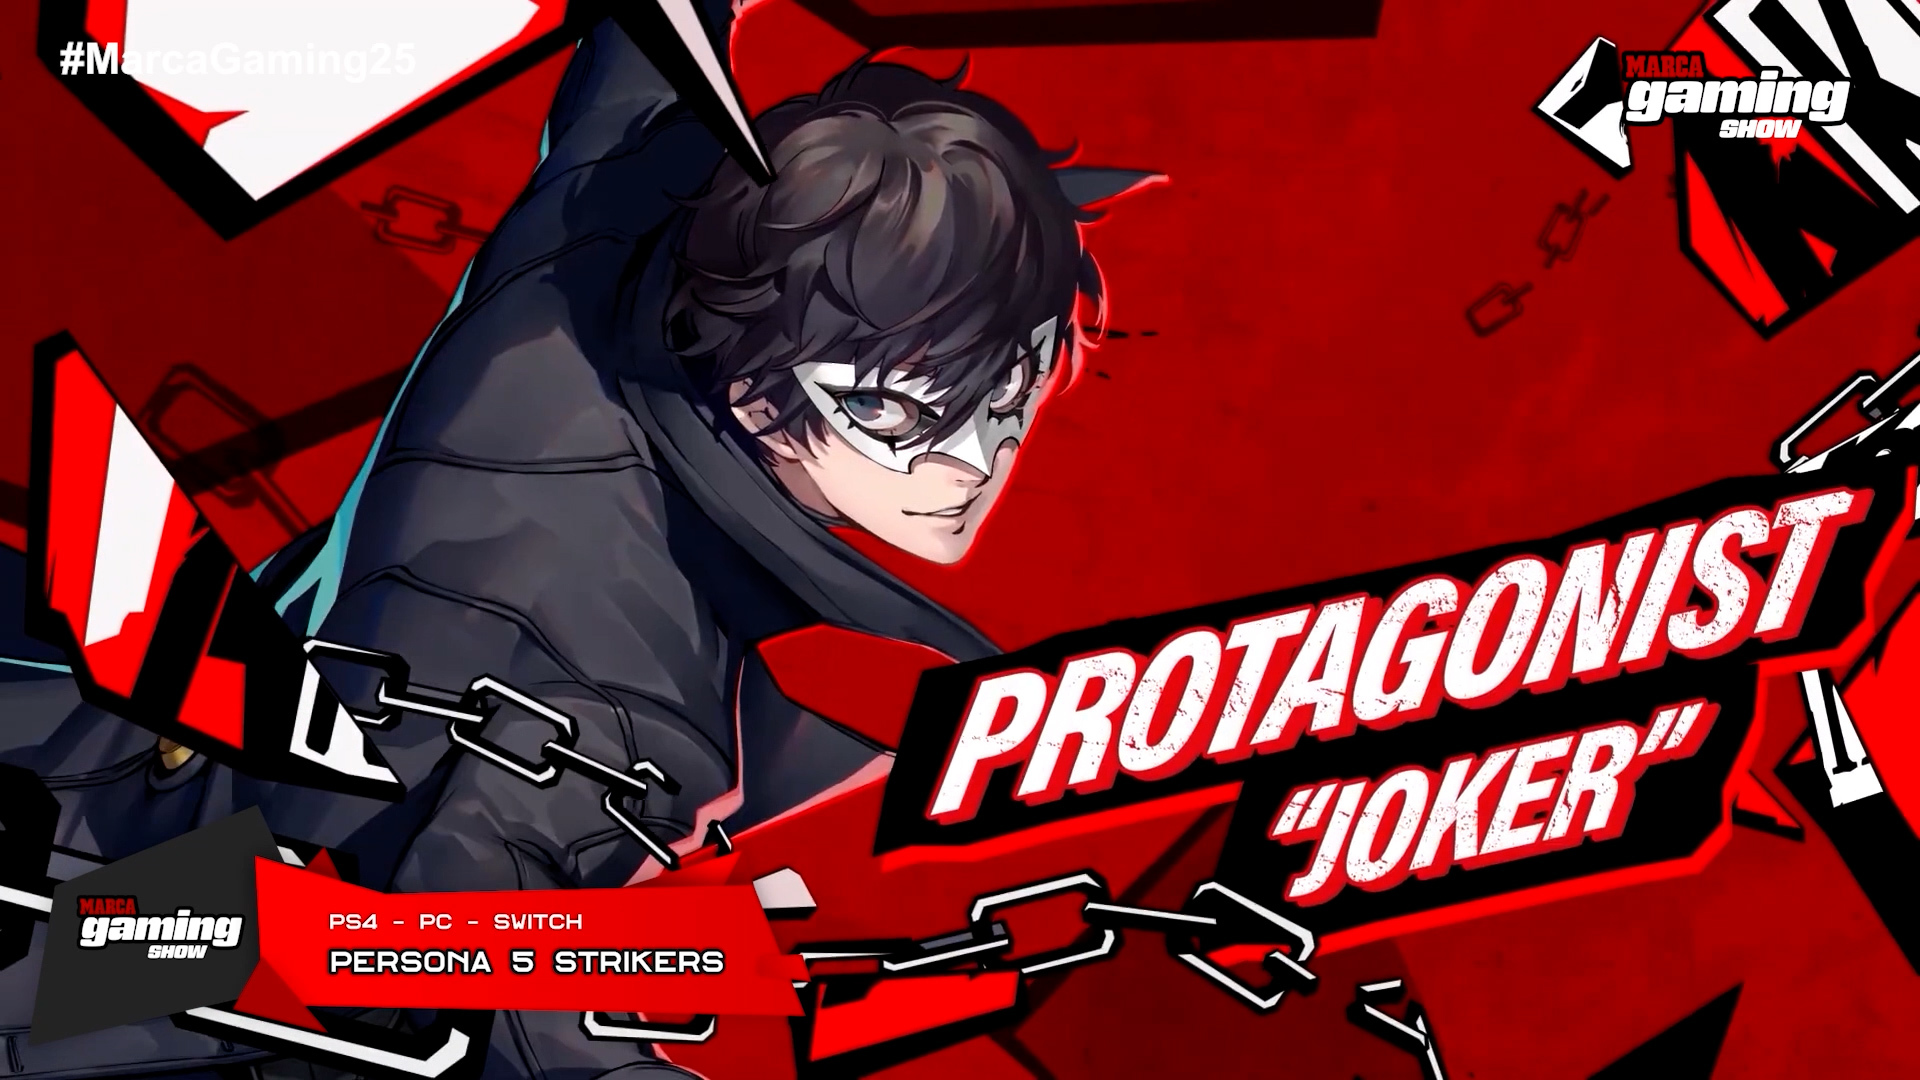 Persona 5 Strikers (PC, PS4, SWITCH)